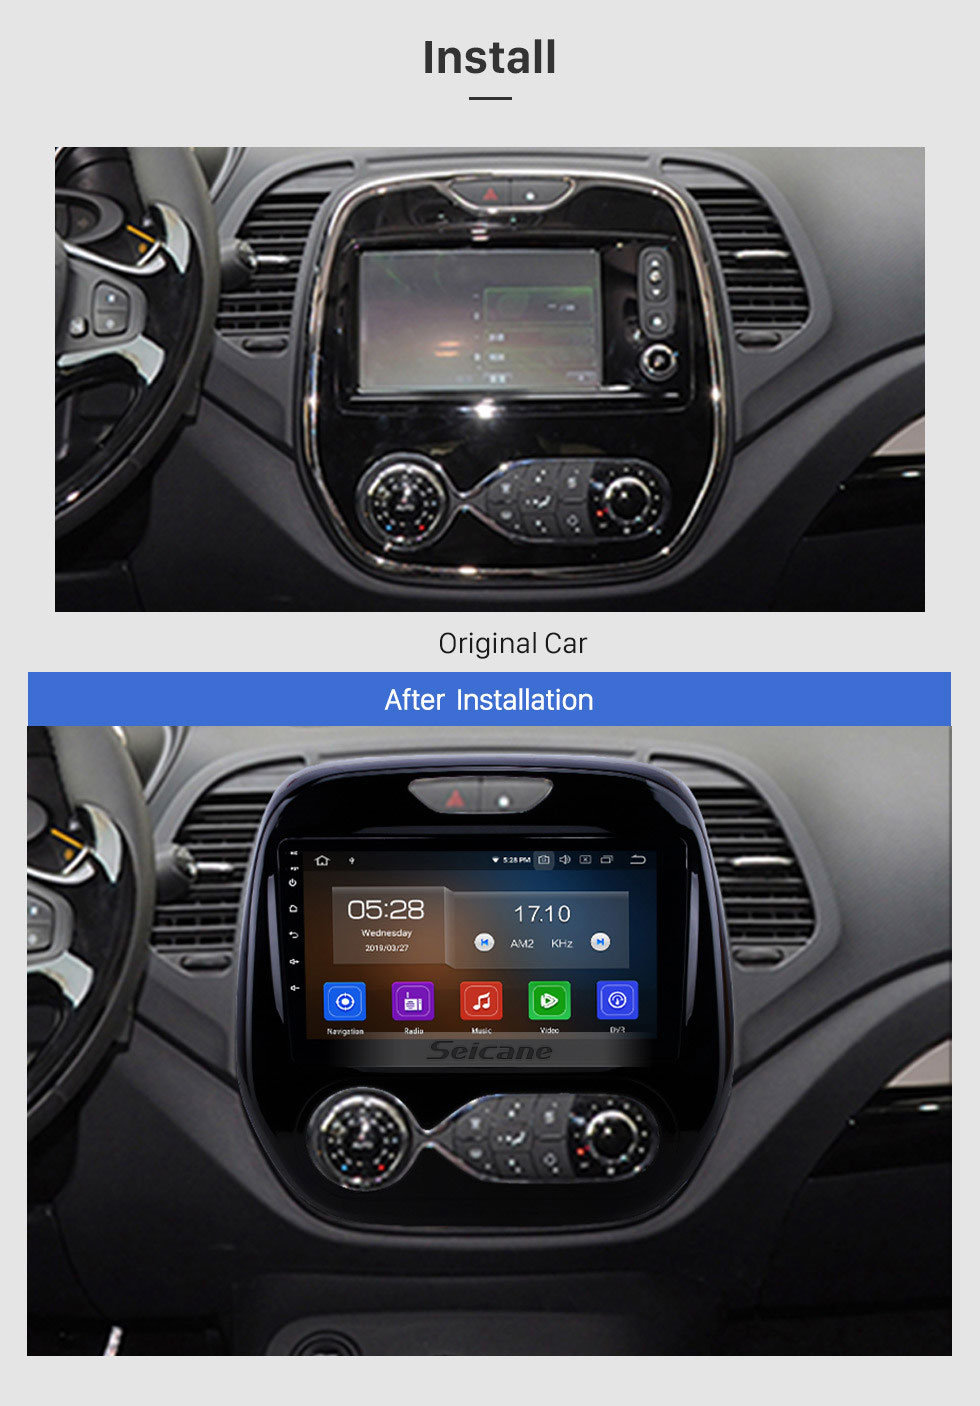 Seicane Android 9.0 9 inch 2011-2016 Renault Captur CLIO Samsung QM3 Auto A/C Radio GPS Navigation Bluetooth Stereo with Audio system 1080P Video USB WIFI Mirror Link Aux